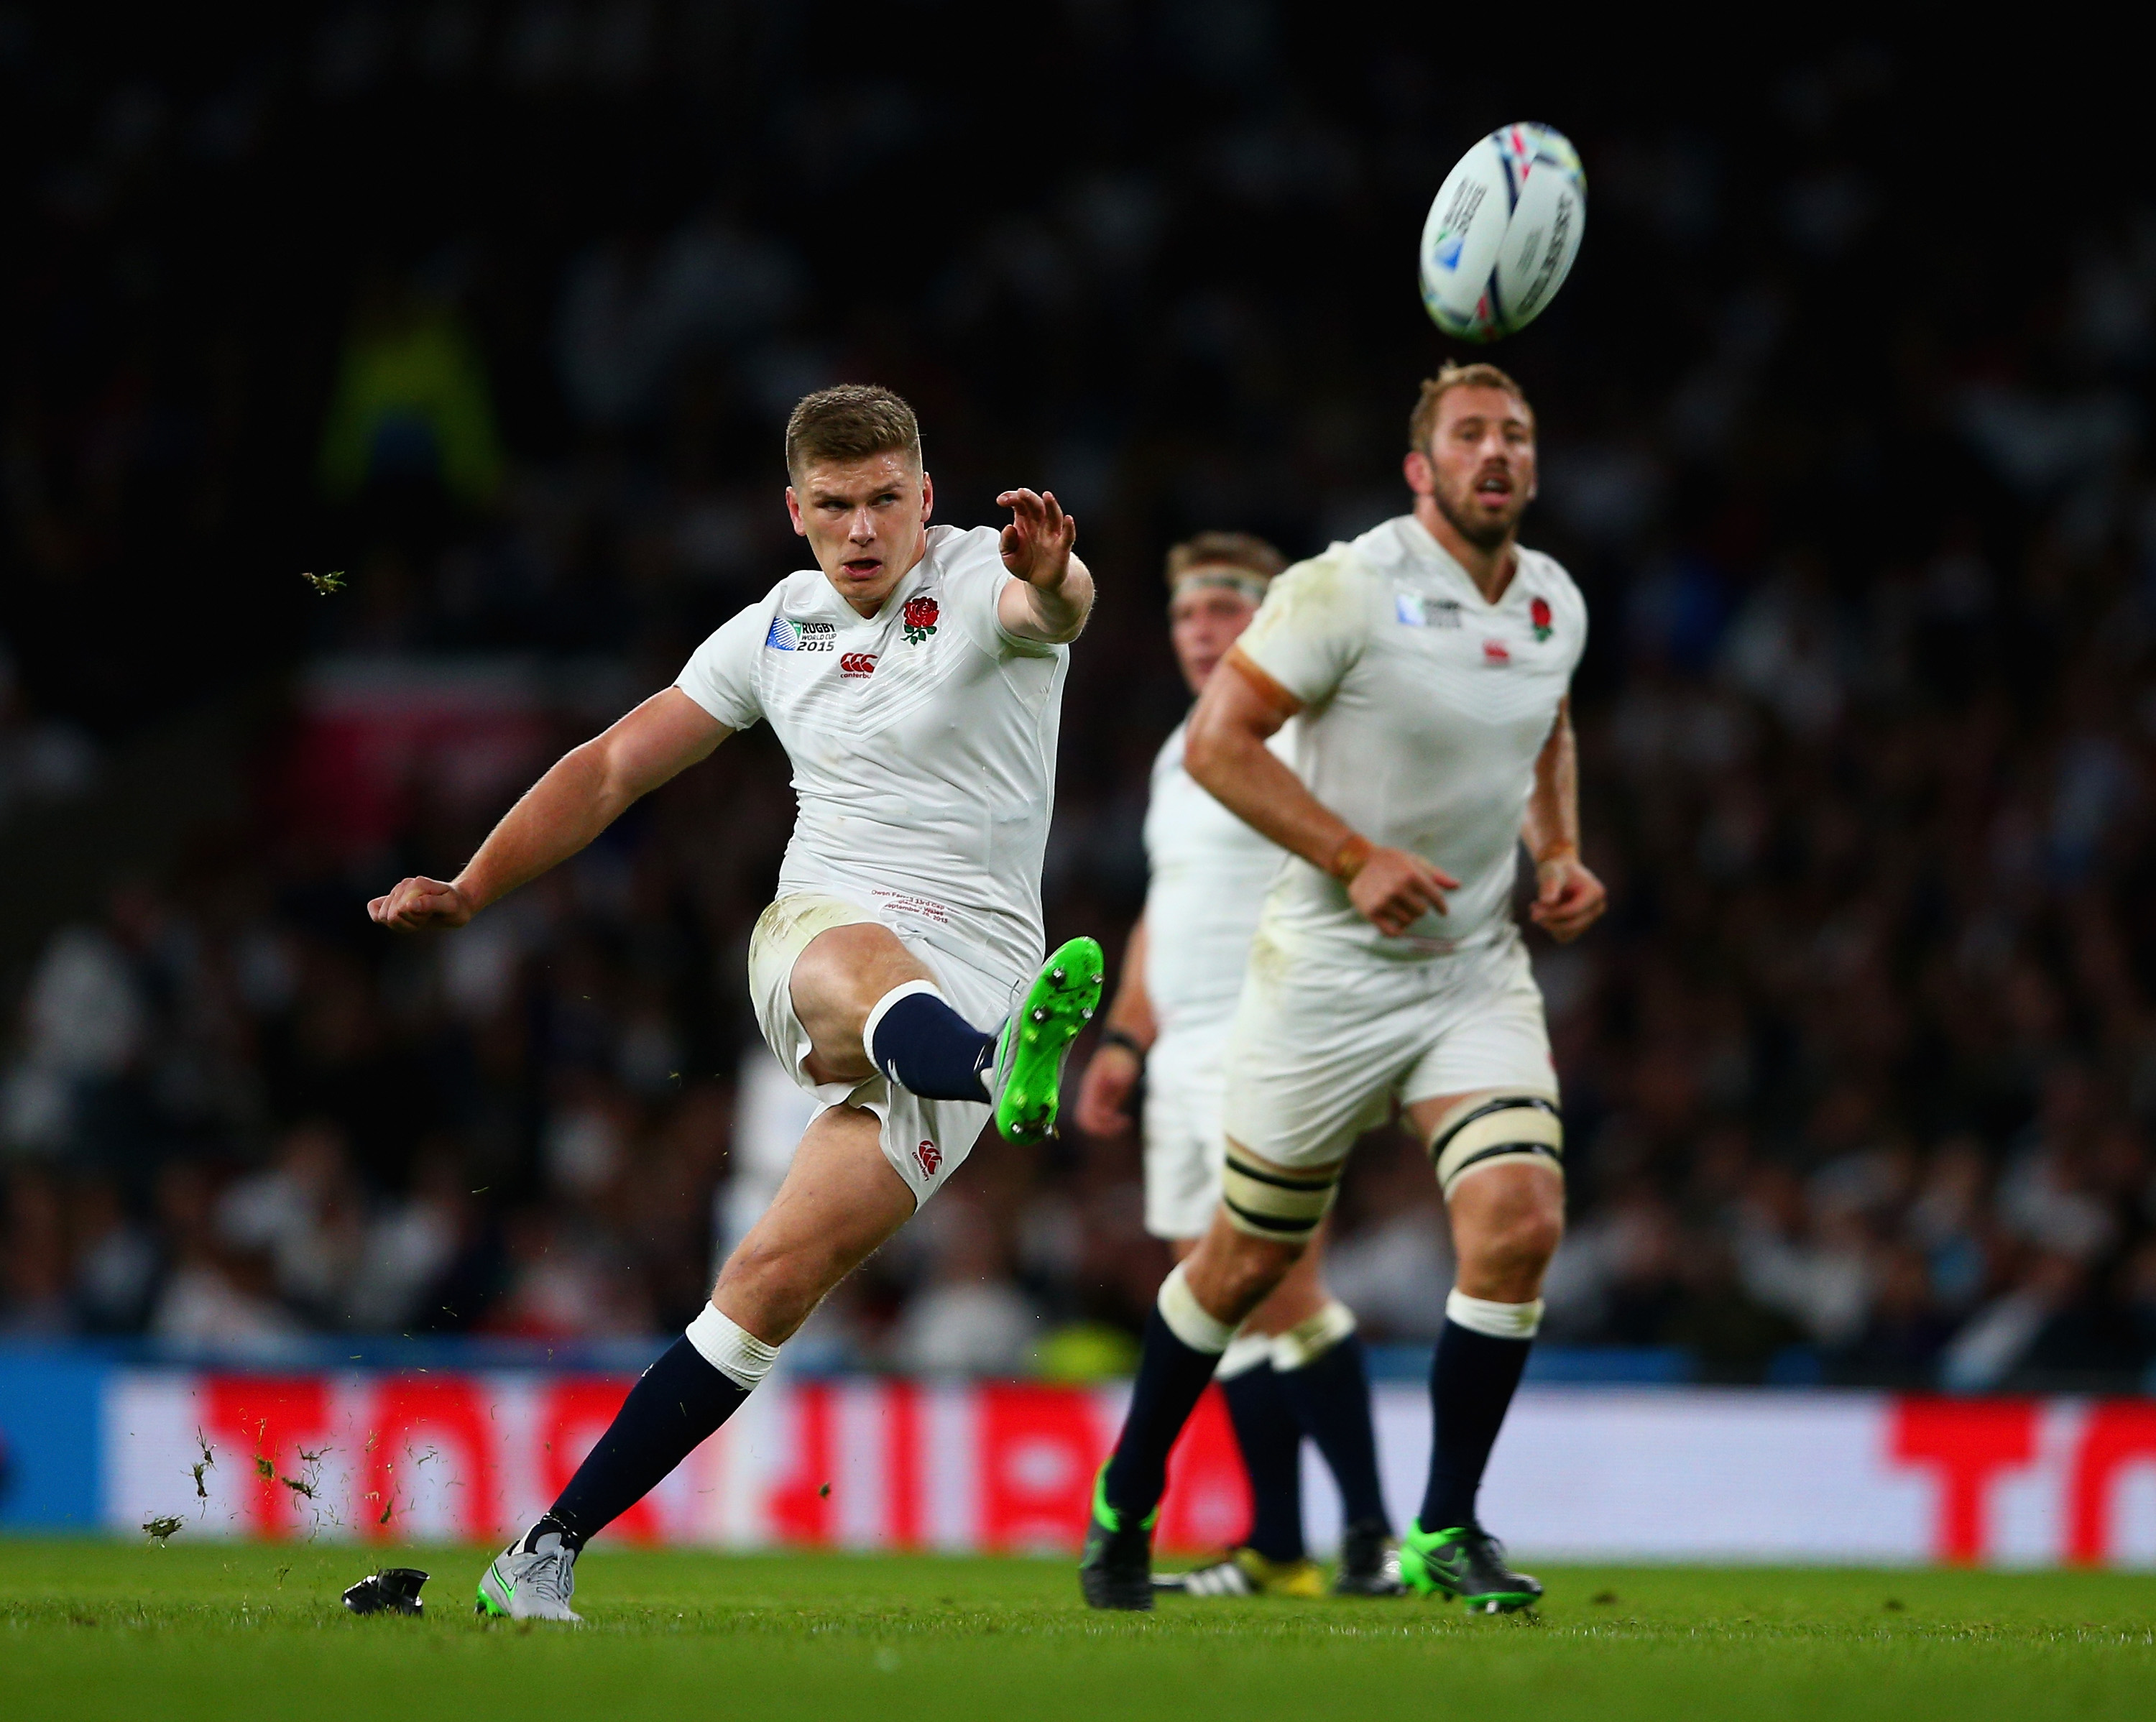 LONDON, ENGLAND - SEPTEMBER 26: Owen Farrell of England kicks a penalty during the 2015 Rugby World Cup Pool A match between England and Wales at Twickenham Stadium on September 26, 2015 in London, United Kingdom. (Photo by Paul Gilham/Getty Images)